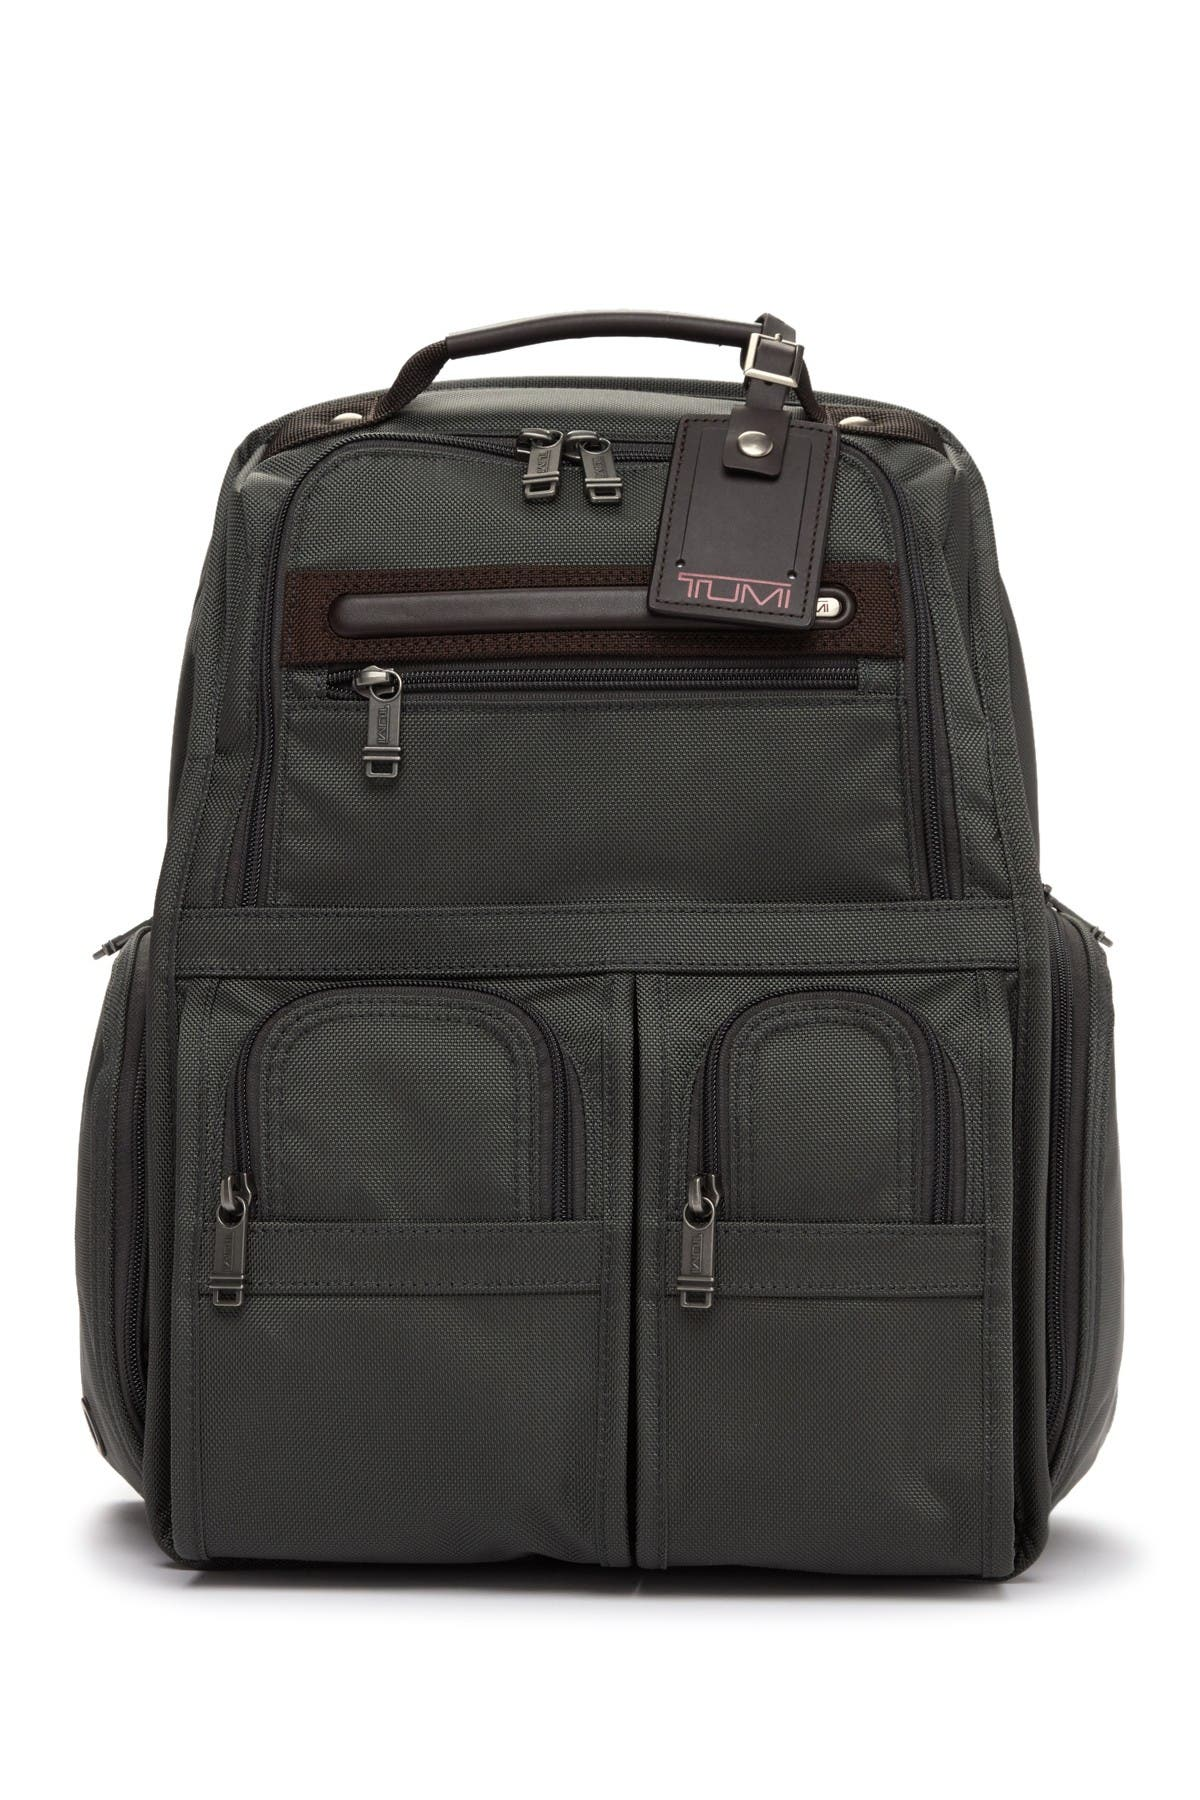 Image of Tumi Compact Nylon Laptop Brief Pack